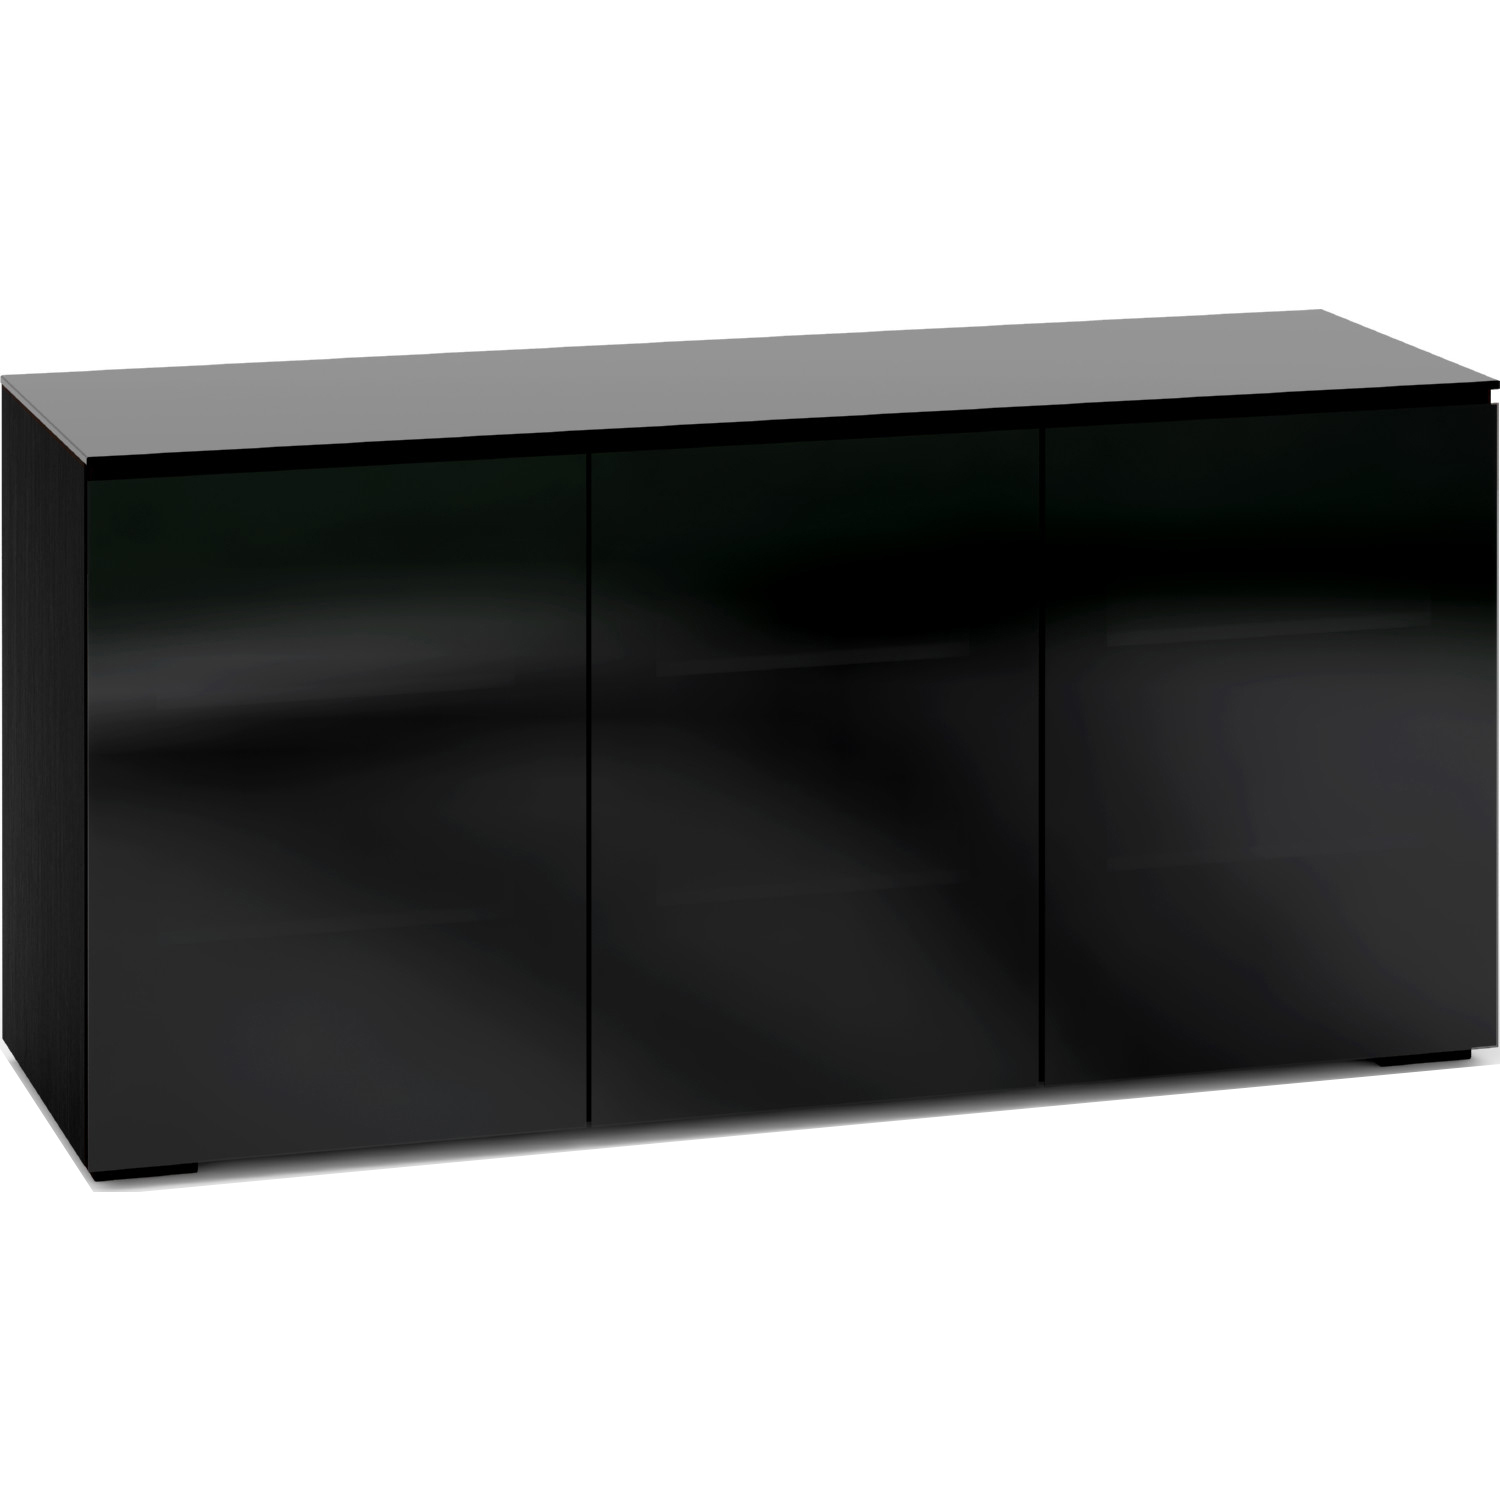 Picture of: Salamander Designs C Os337 Bg Oslo 337 65 Extra Tall Tv Stand Cabinet In Black Oak W Smoked Black Glass Doors Top